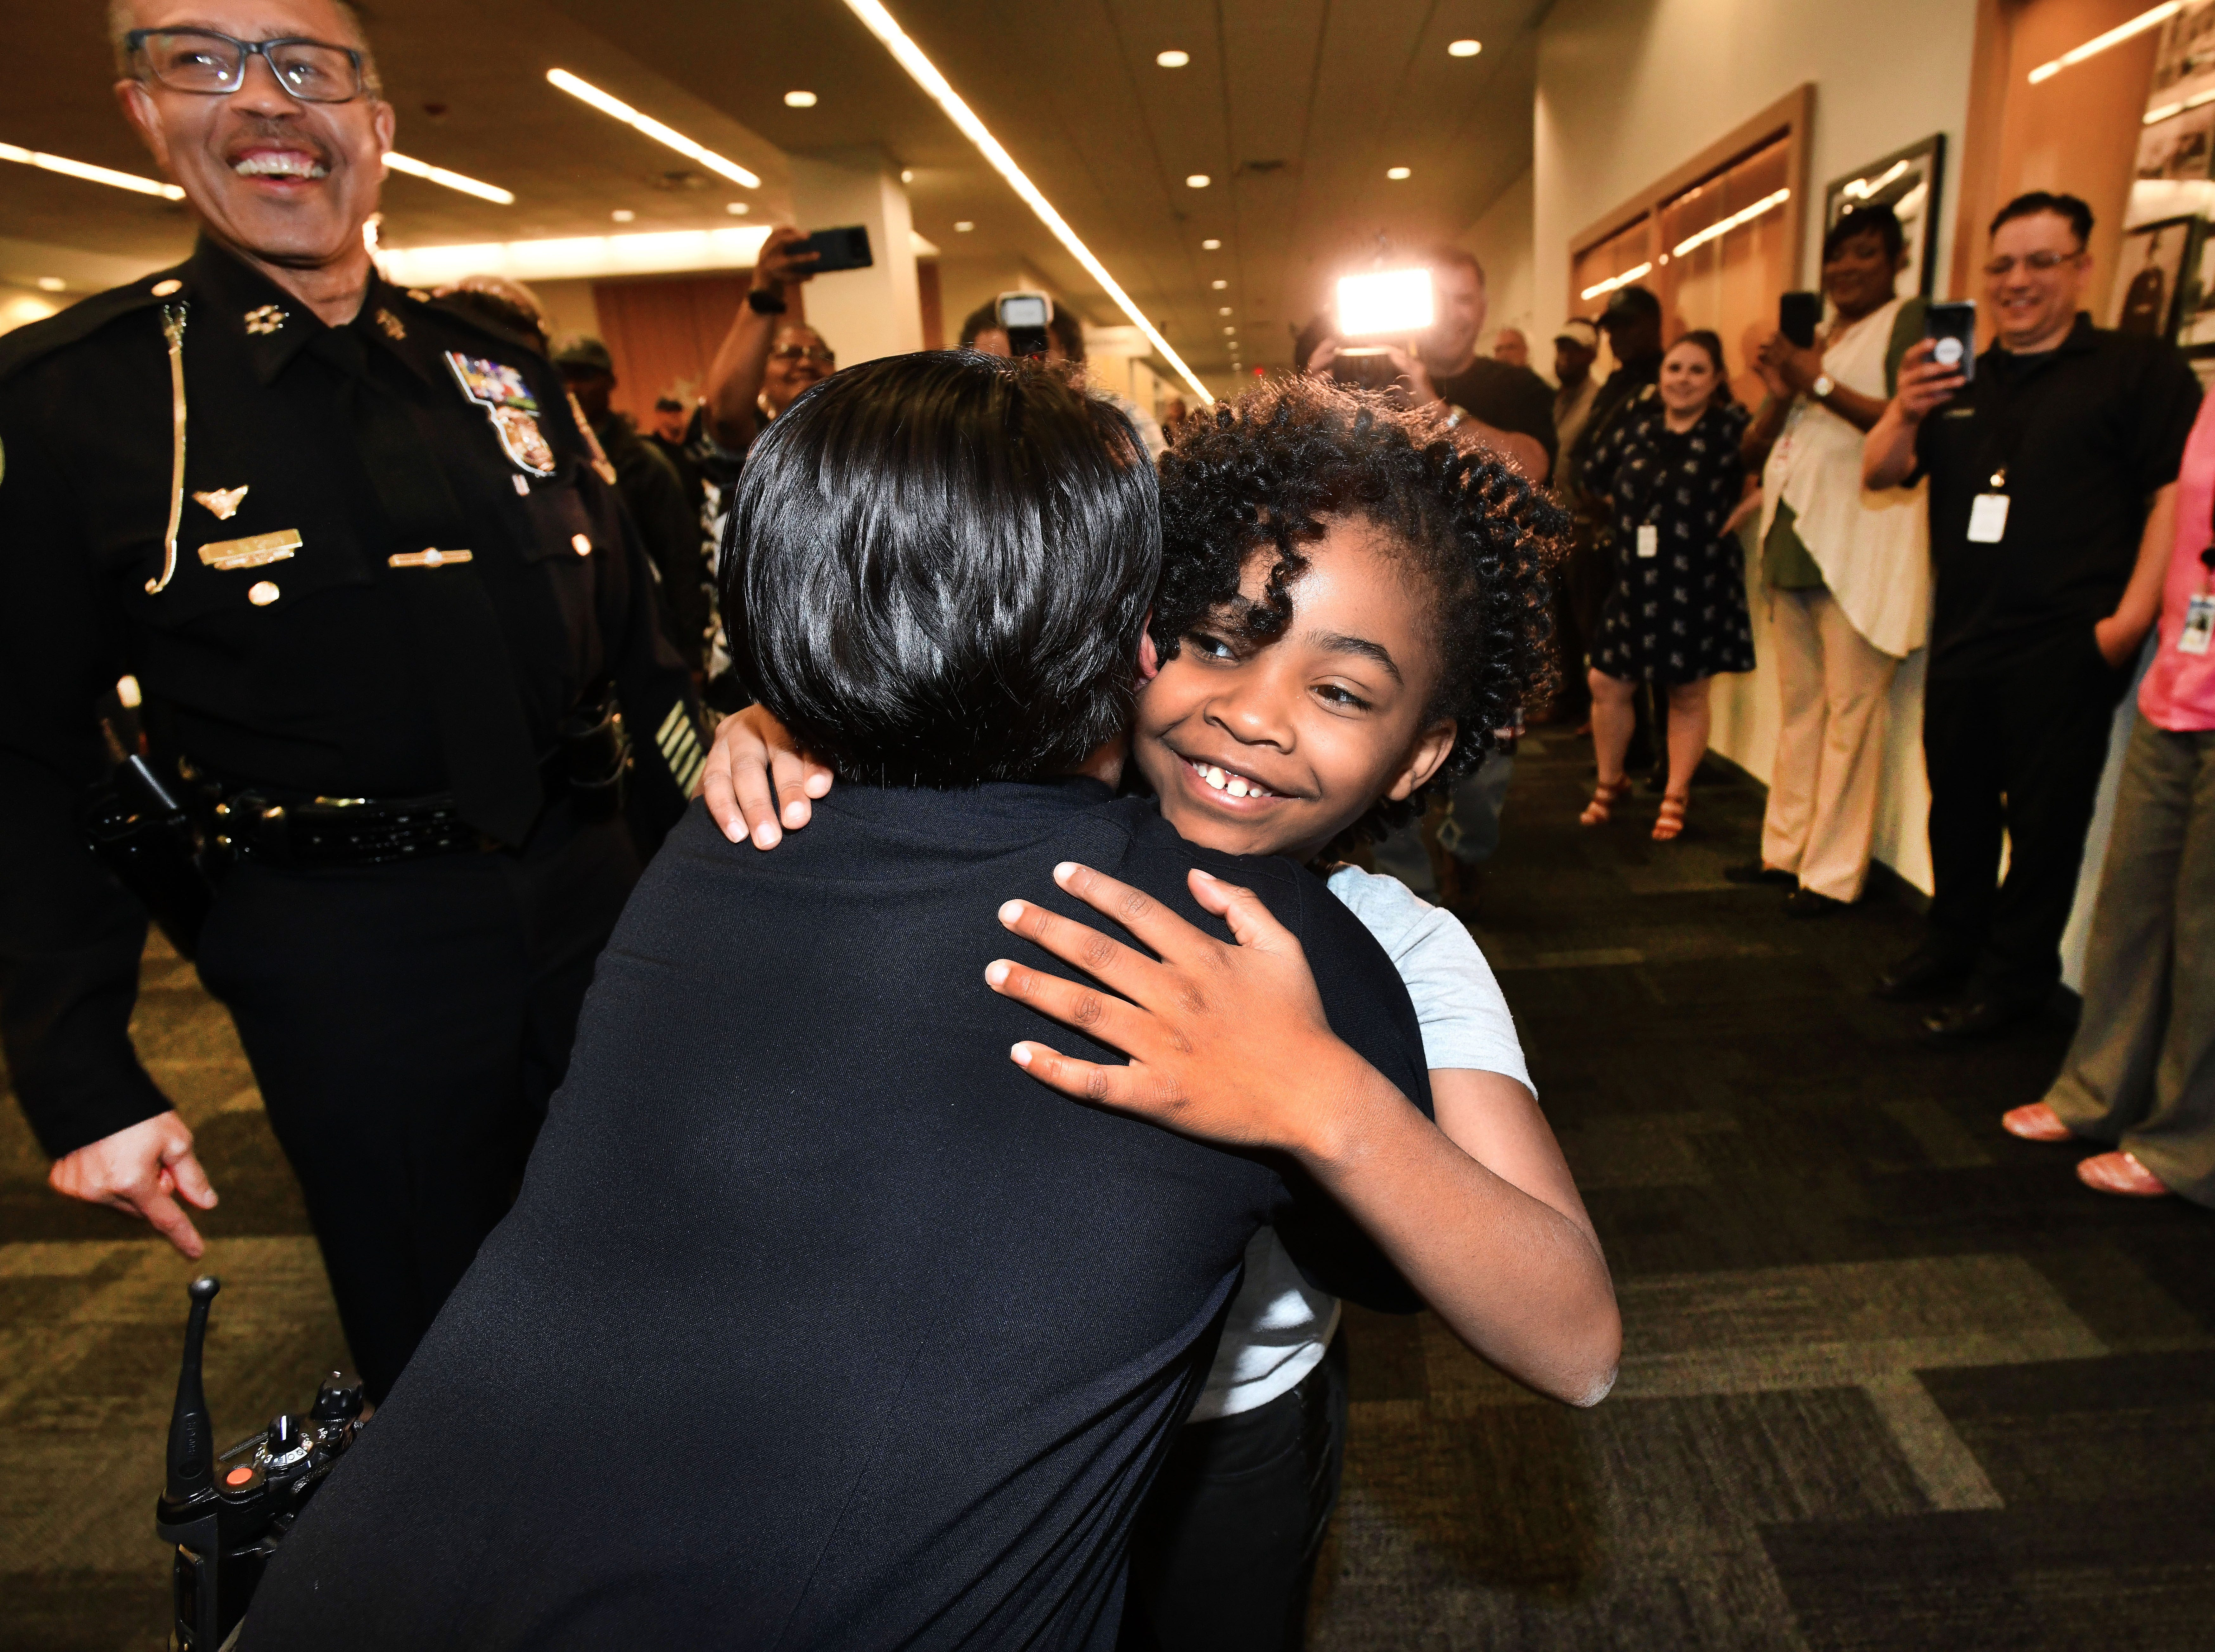 Cpl. Renee Stanley gets a hug from Rosalyn Baldwin as Police Chief James Craig and other officers at Detroit Police headquarters got a wonderful surprise from the inspirational 8-year old. After five Dallas police officers were killed in 2016,  8-year old Rosalyn Baldwin decided that she would go across the country and hug police officers. She stopped in Detroit on May 14, 2018.